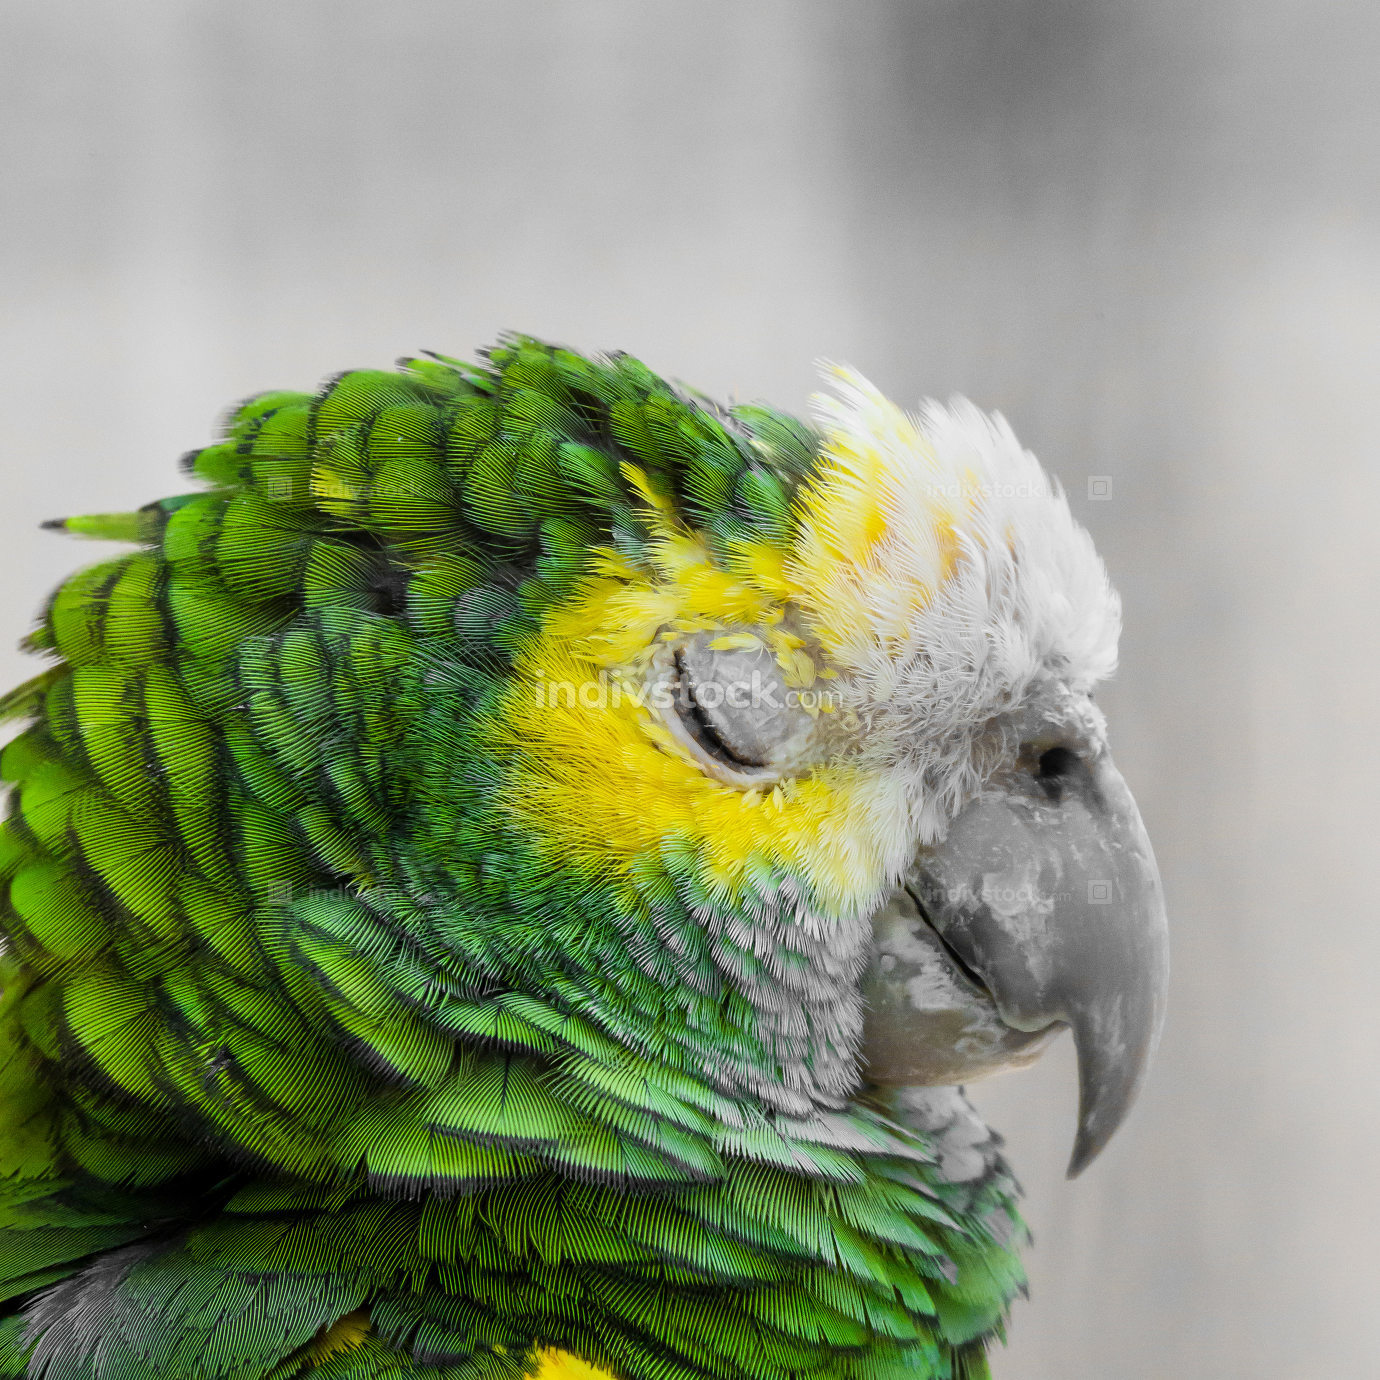 Green bird plumage, Harlequin Macaw feathers, nature texture bac